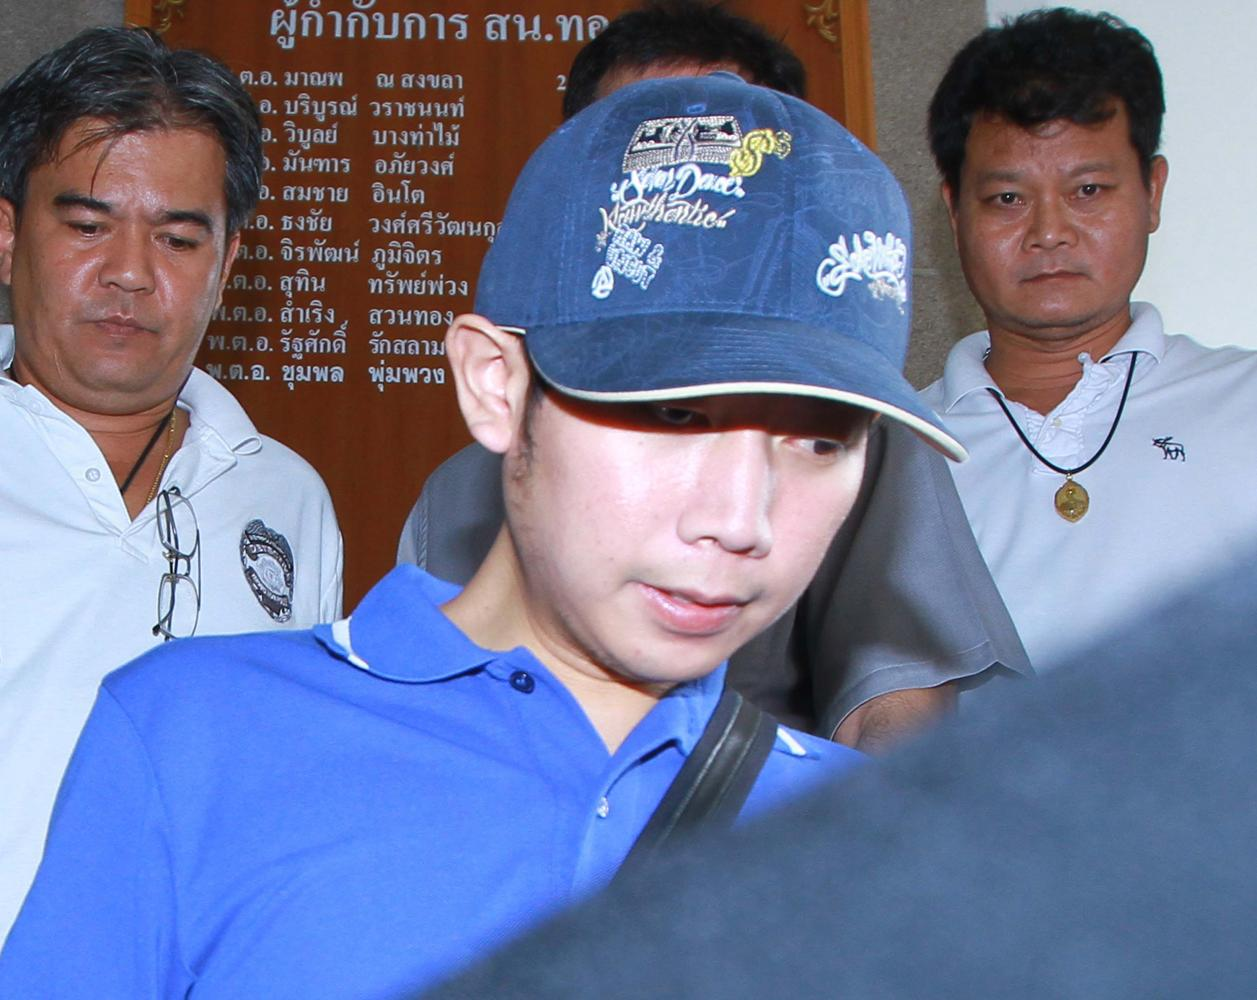 'Boss' acquittal role